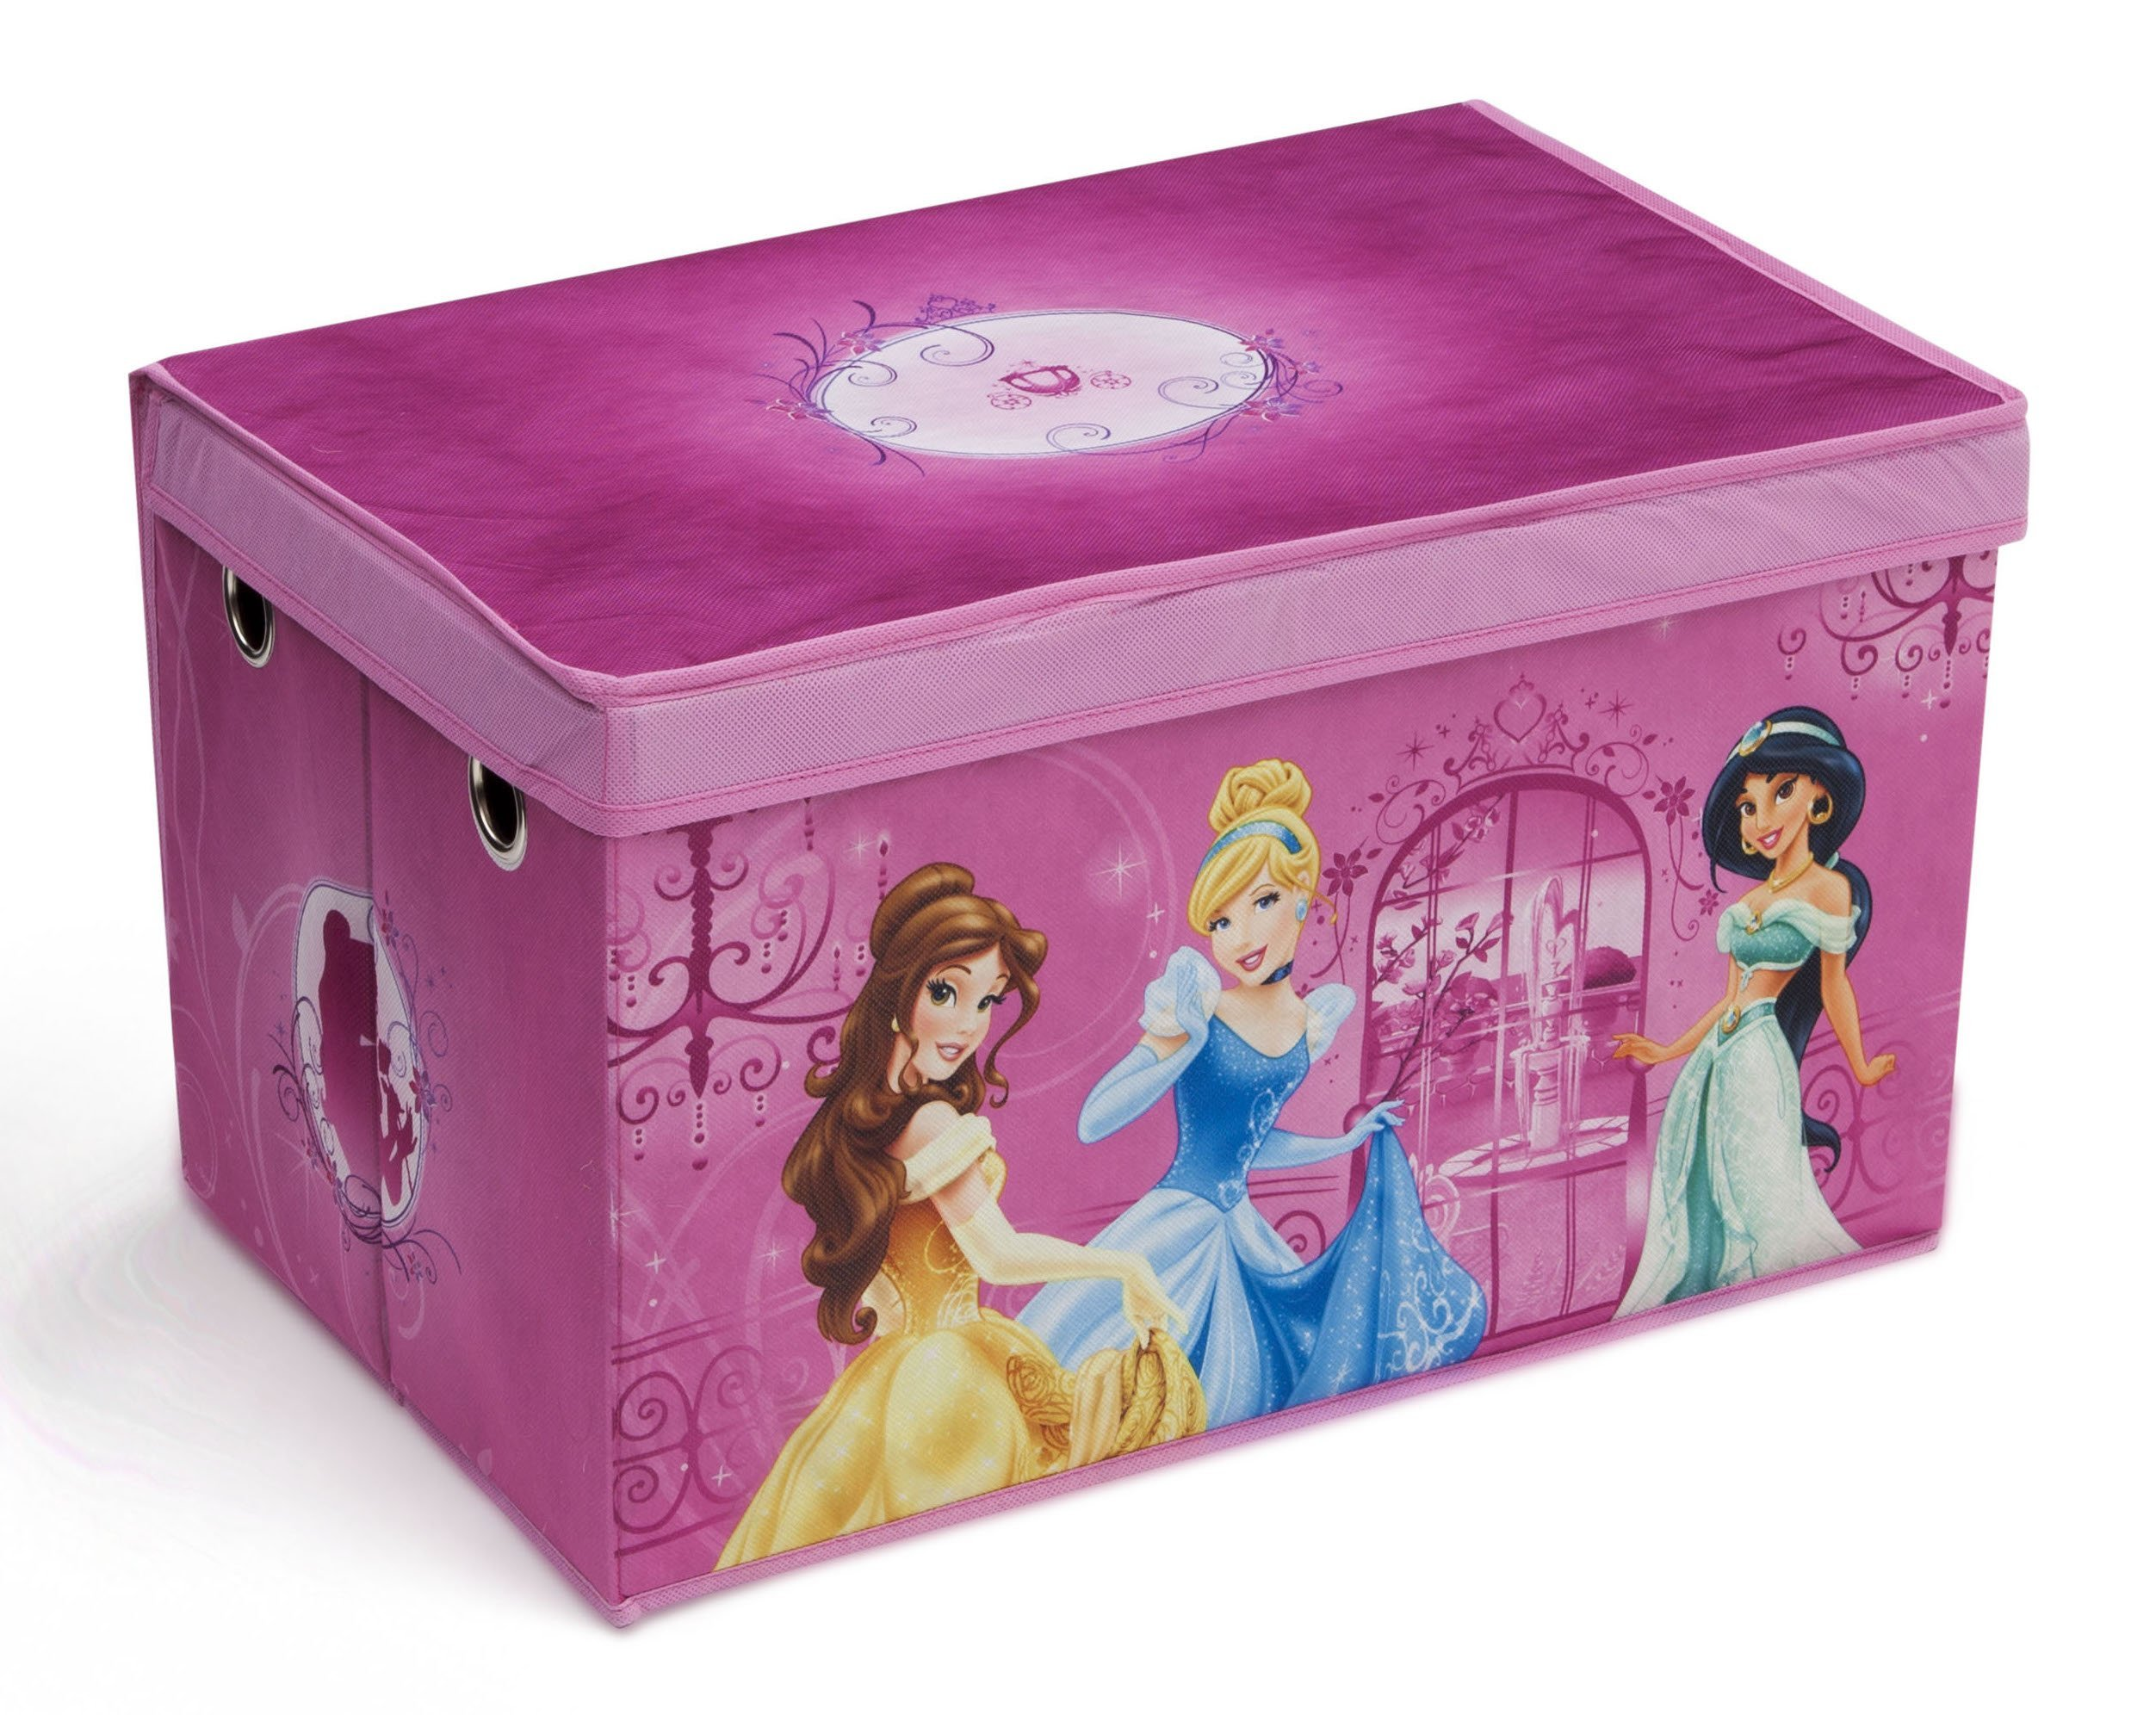 Princess Toys Box Storage Kids Girls Chest Bedroom Clothes: Amazon.com : Delta Children Collapsible Fabric Toy Box